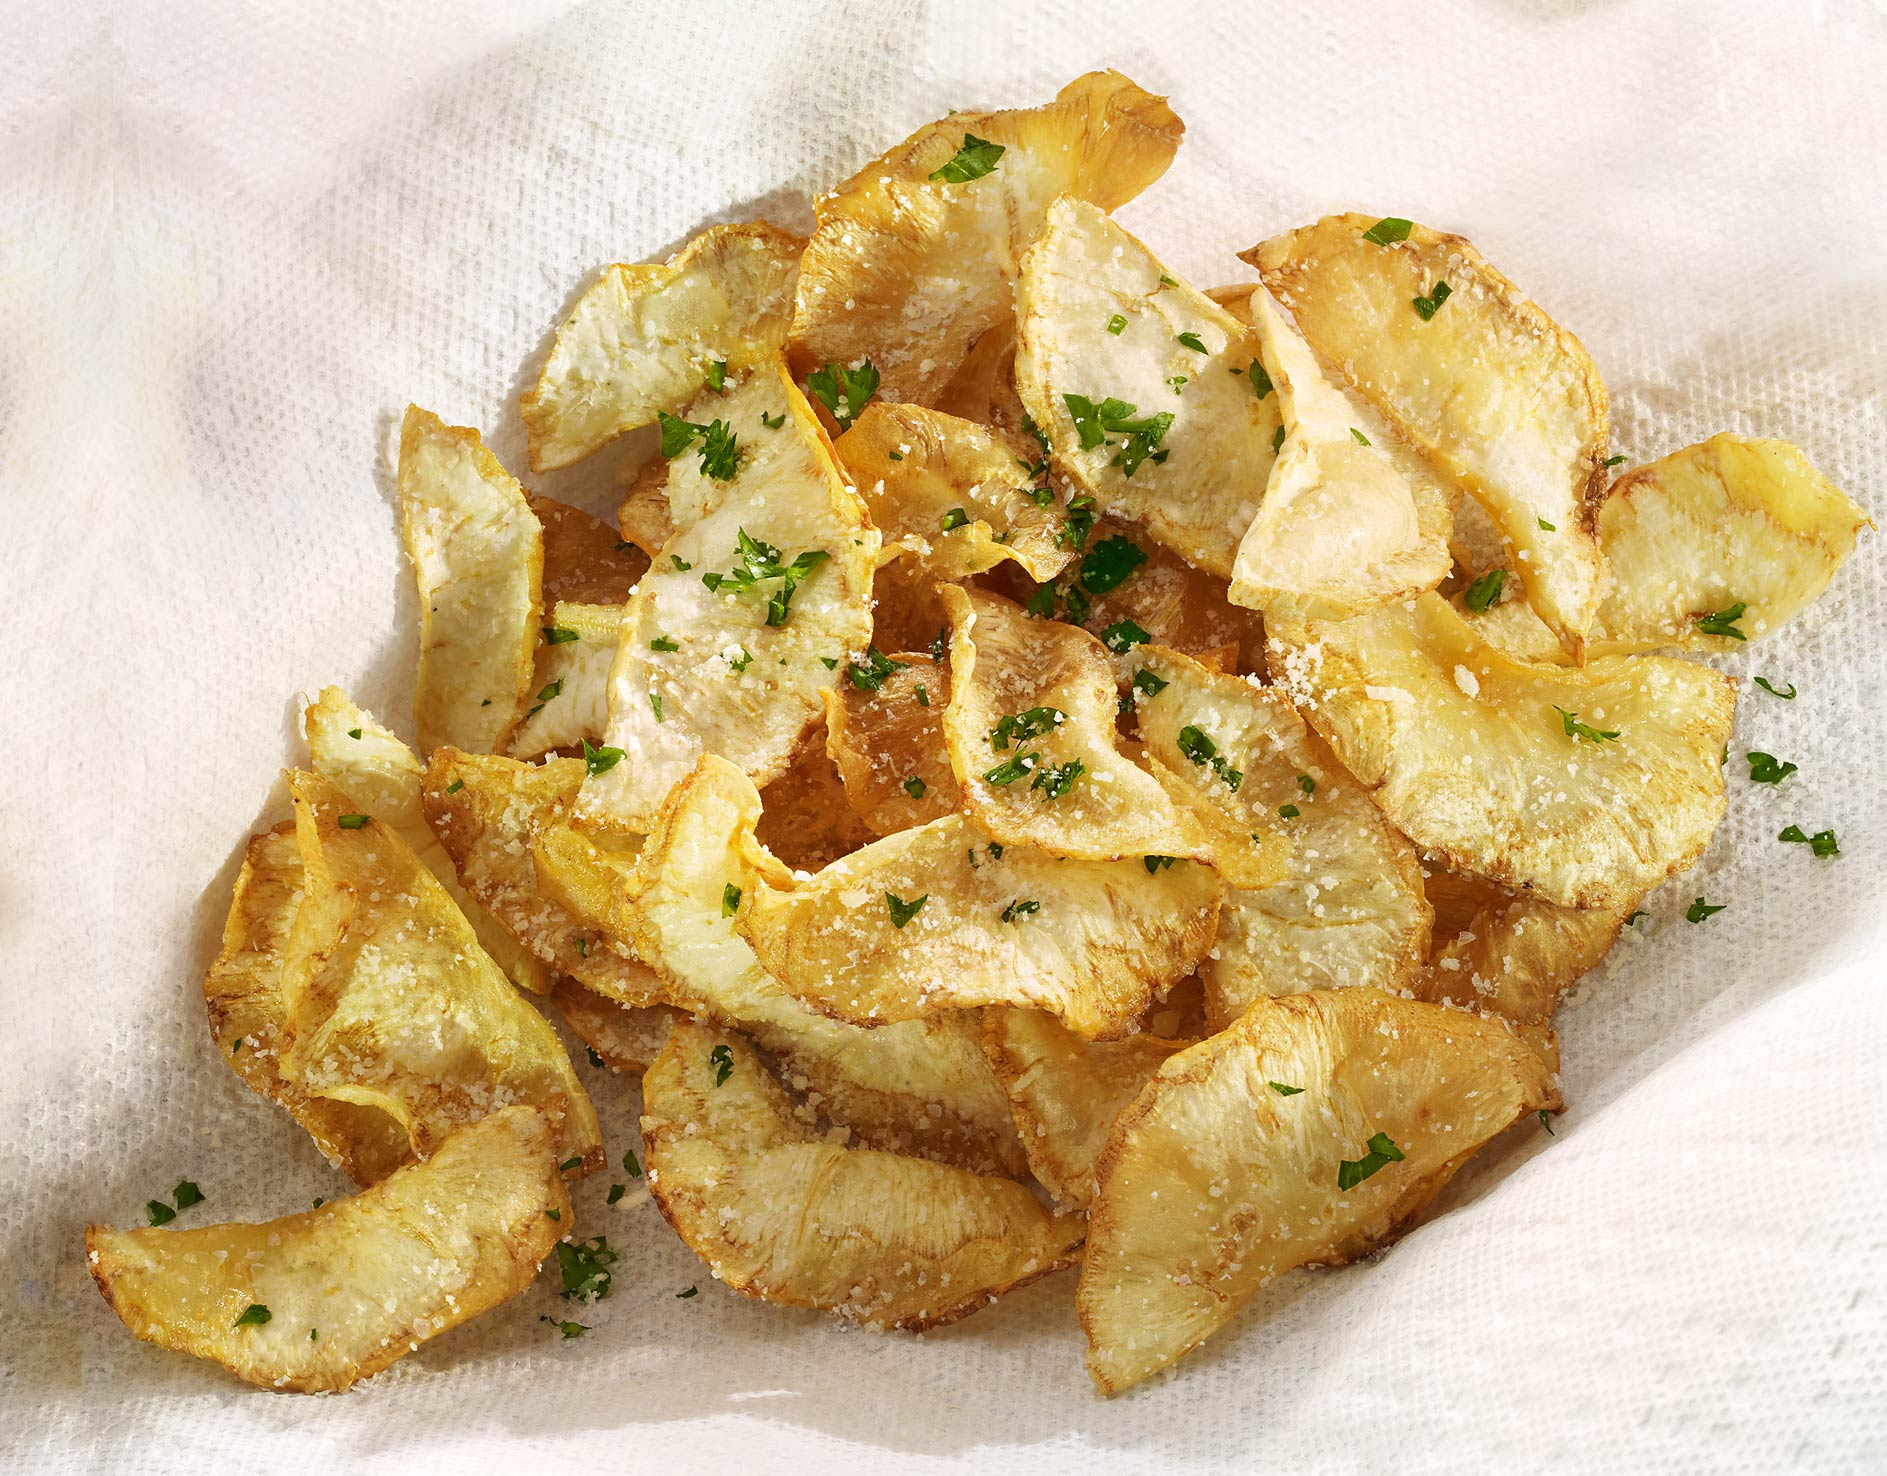 Glasshouse Assignment - David Bishop - Food Photography - Celeriac Chips